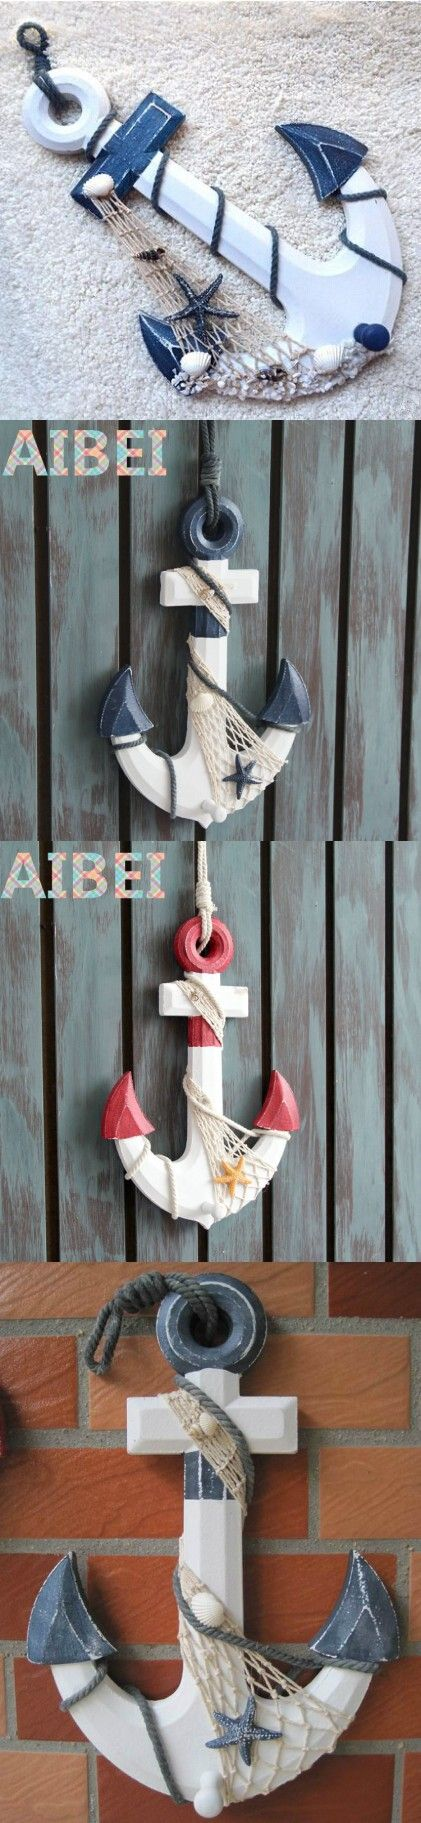 Mediterranean Style COAT HOOK,Wooden Anchor Wall Hooks ,BAR nautical decor home decoration, wall hanging 3d stickers $24.99